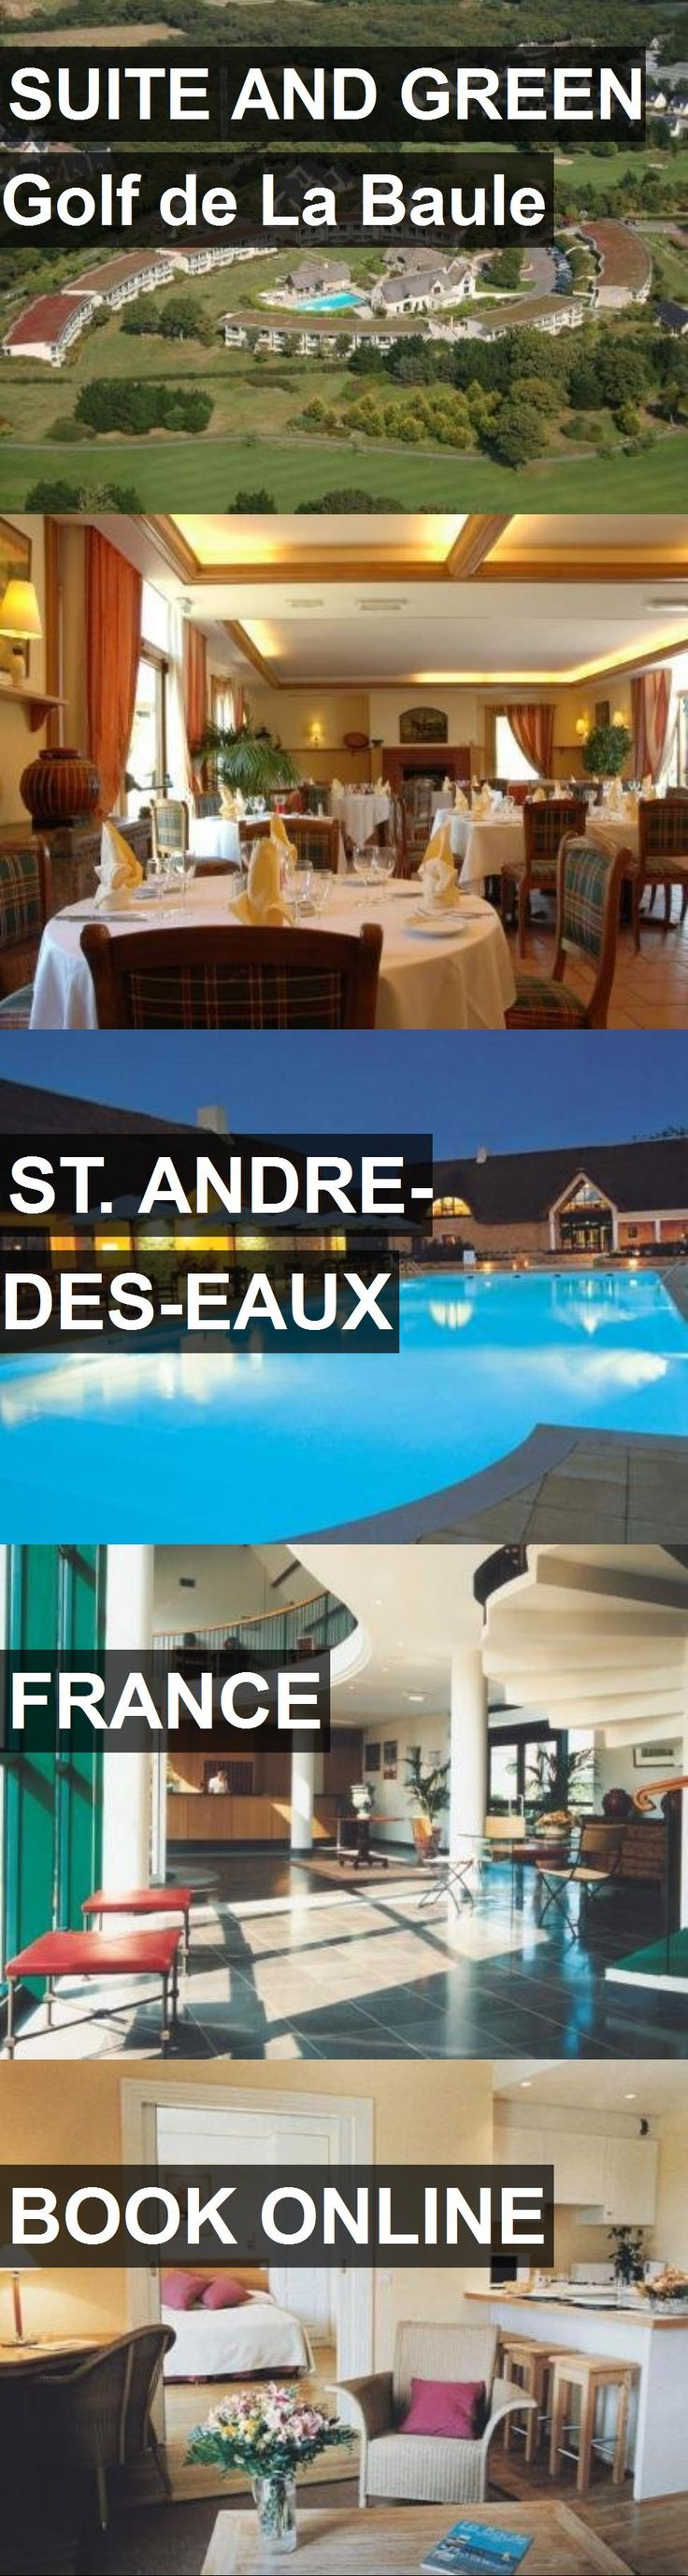 Hotel SUITE AND GREEN Golf de La Baule in St. Andre-des-Eaux, France. For more information, photos, reviews and best prices please follow the link. #France #St.Andre-des-Eaux #SUITEANDGREENGolfdeLaBaule #hotel #travel #vacation